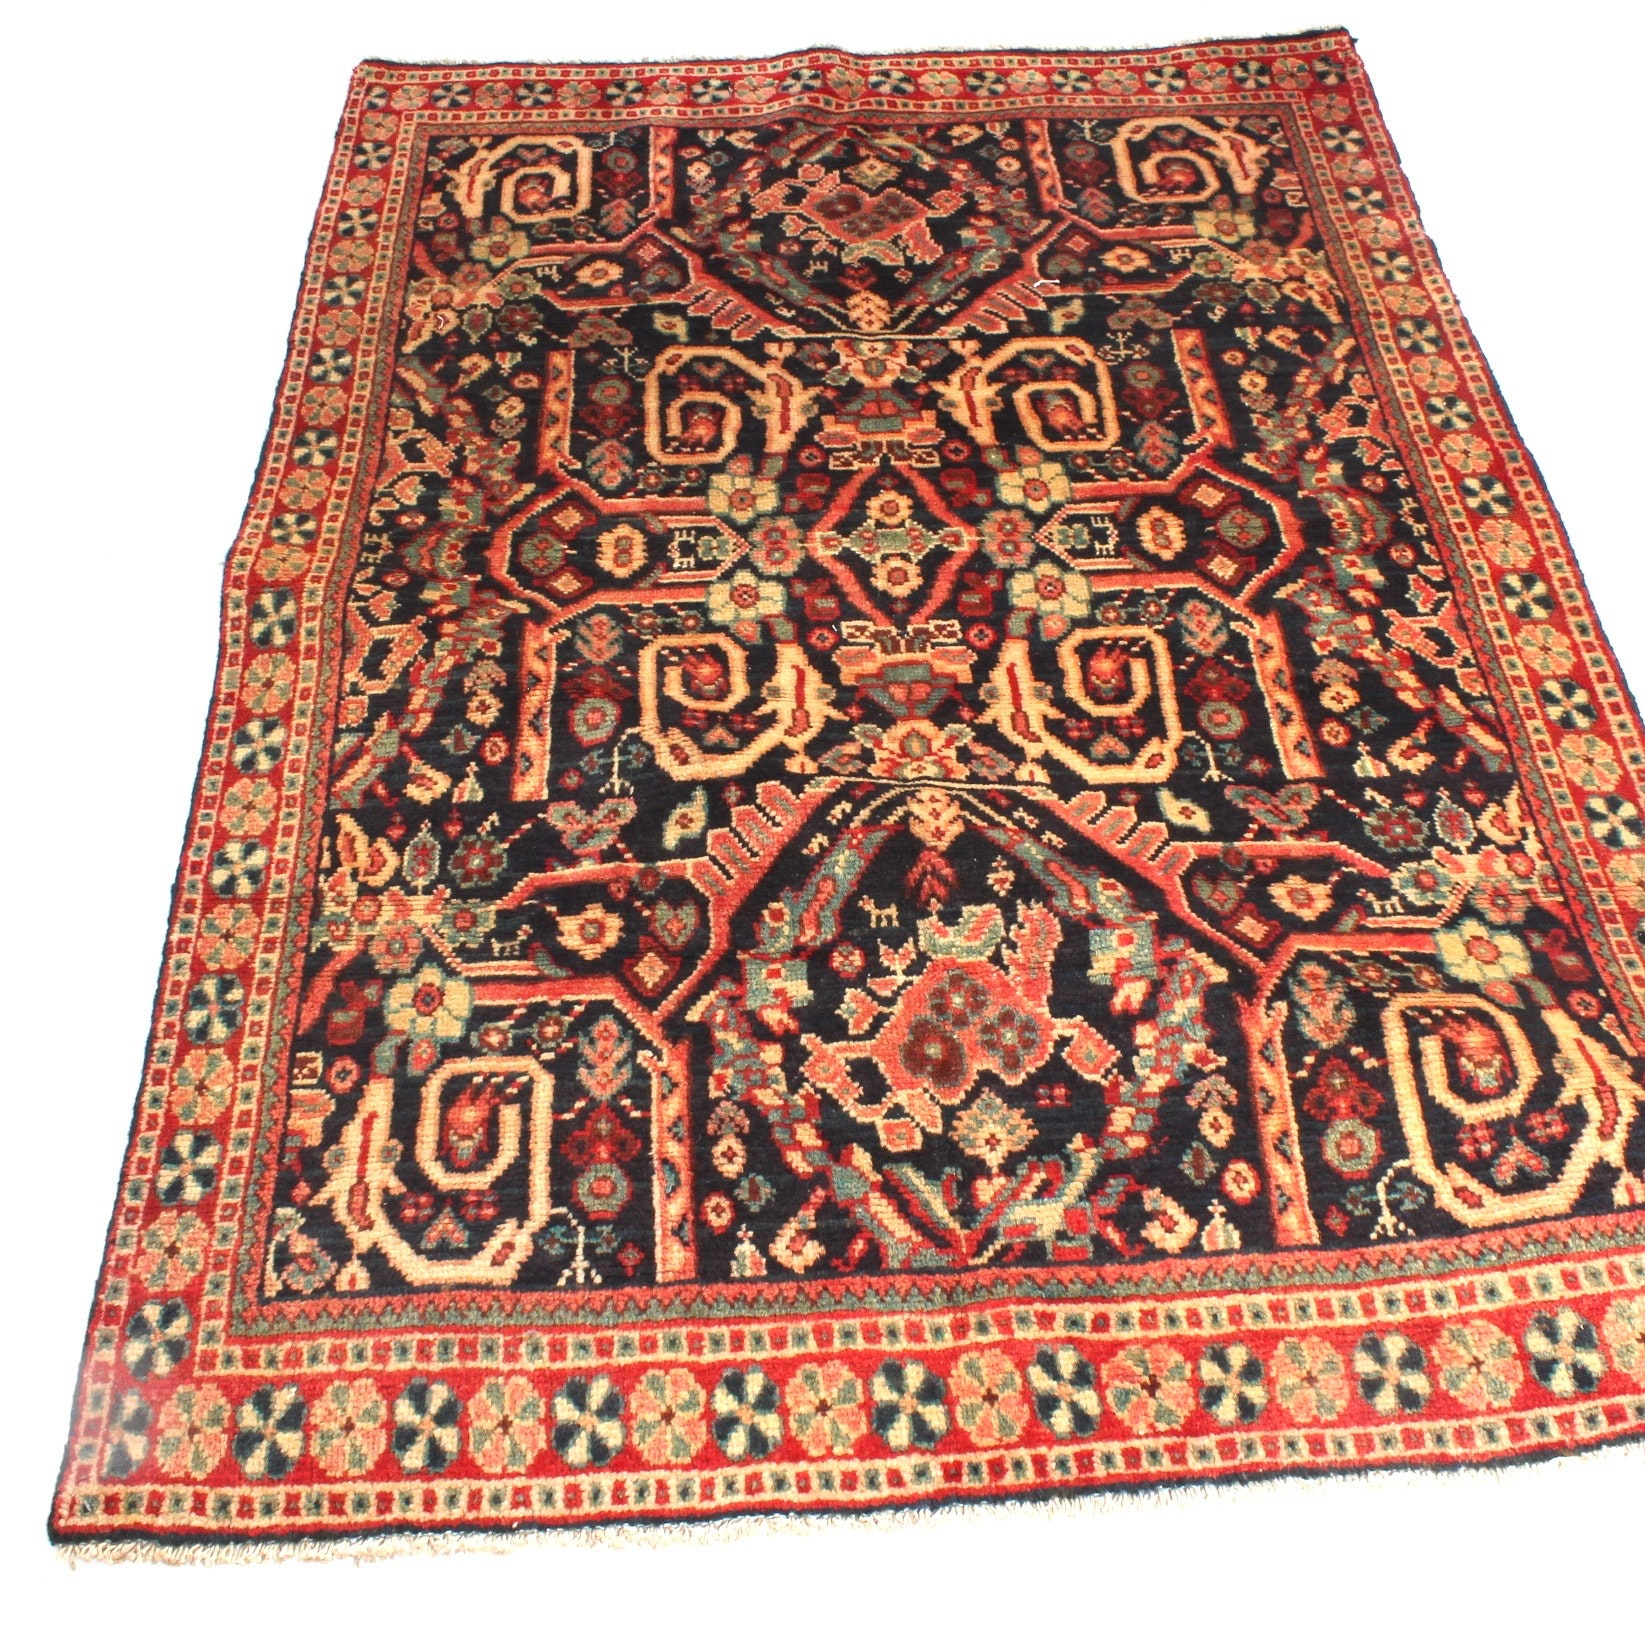 Vintage Hand-Knotted Persian Mahal Sarouk Area Rug